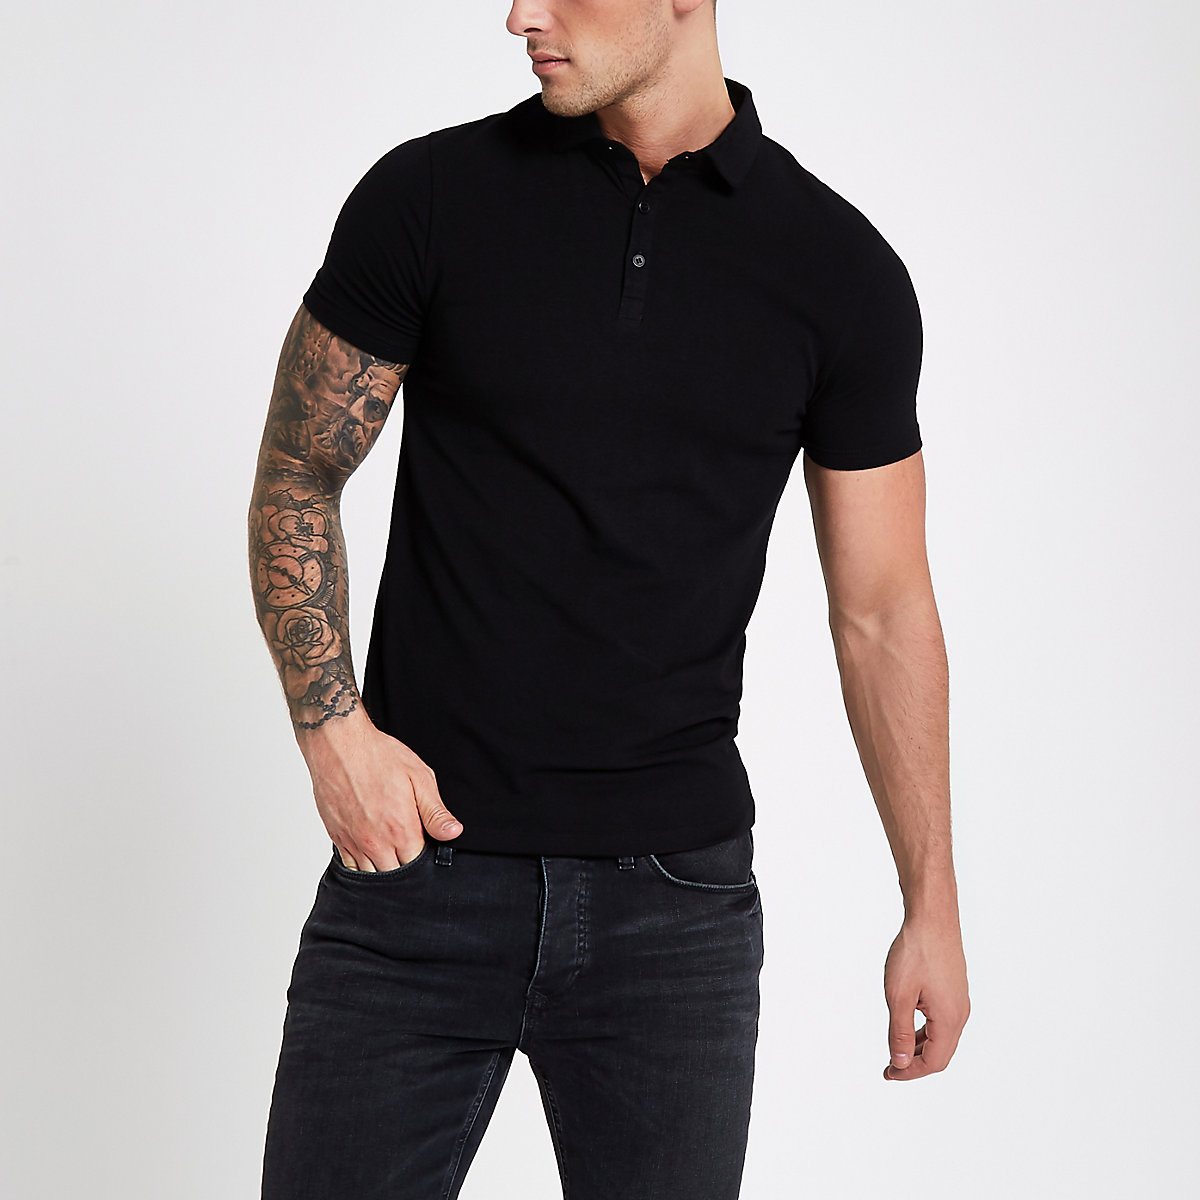 Black essential muscle fit polo shirt - Polo Shirts - men